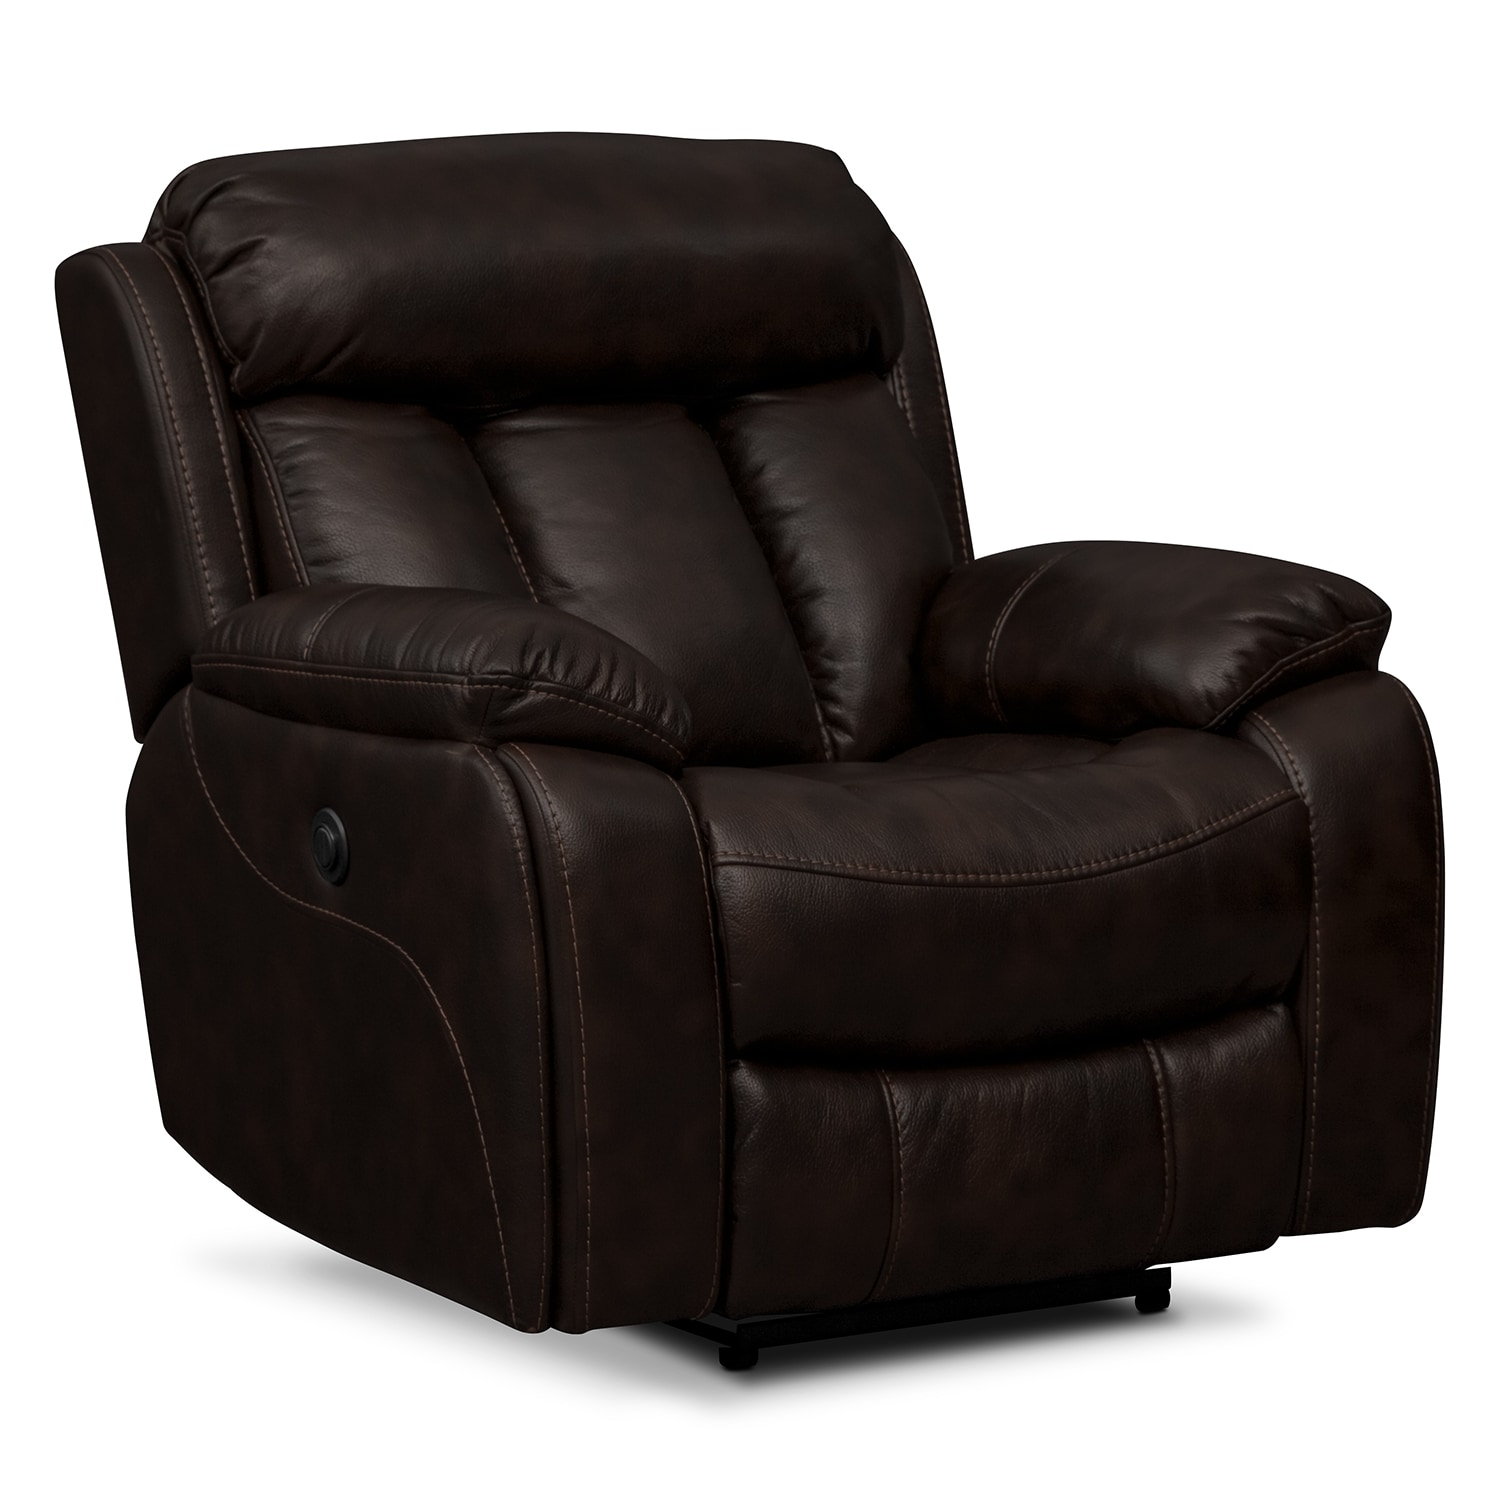 Living Room Furniture - Diablo Power Recliner - Walnut